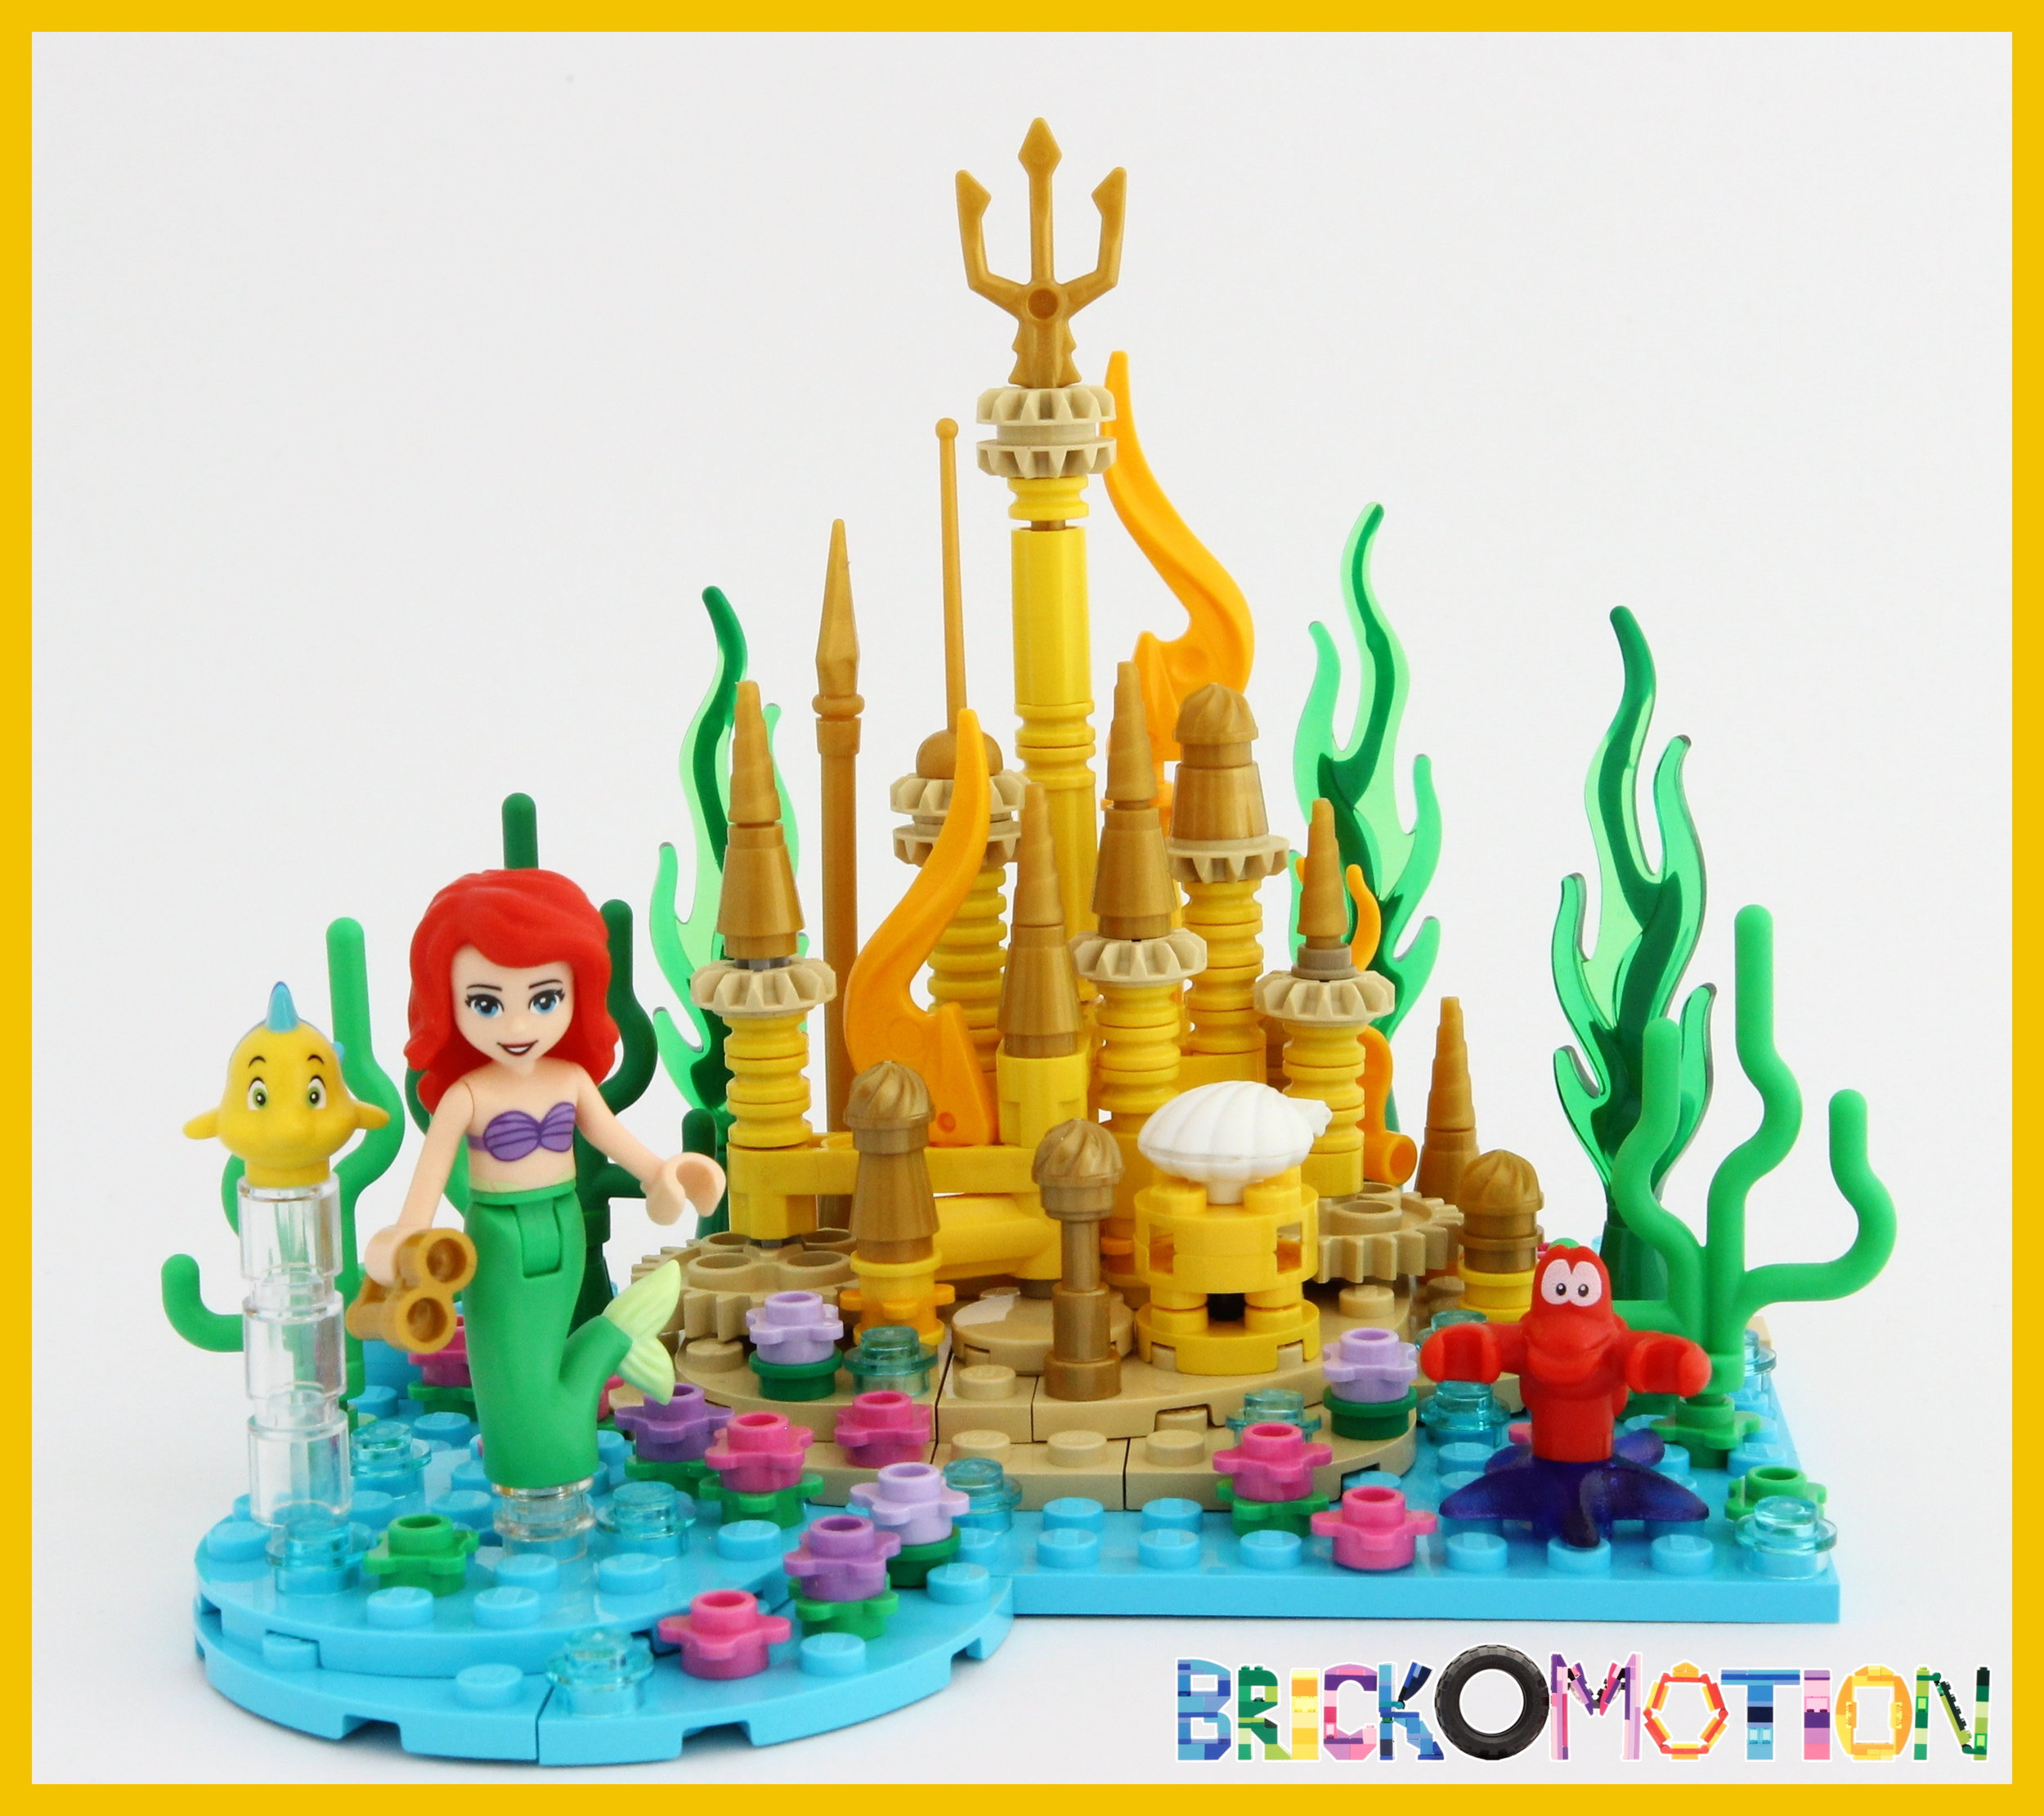 Ariel's micropalace